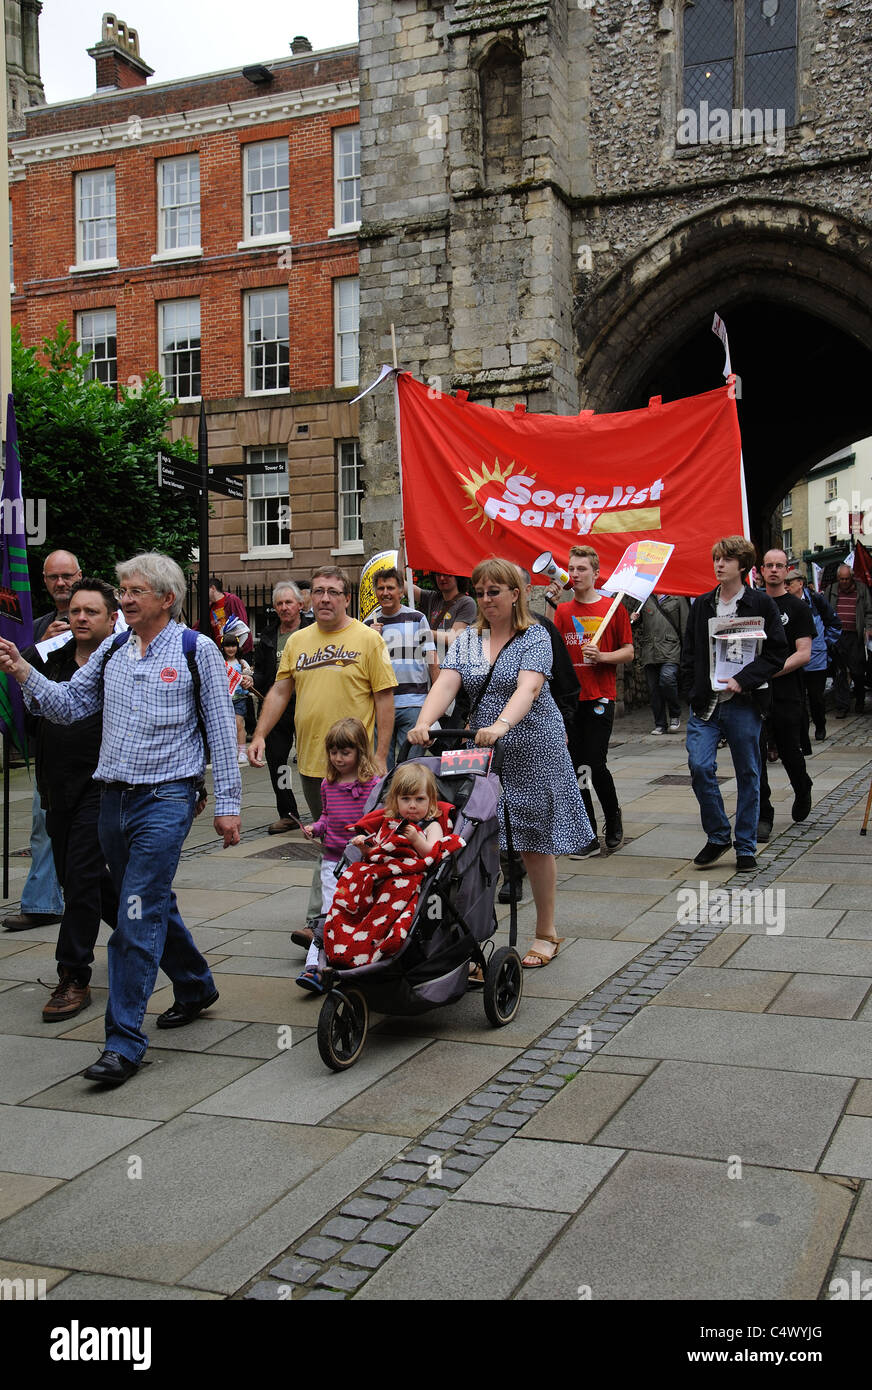 Trade Unionists & Socialist Party members protesting against public service cuts enter the historic city of - Stock Image